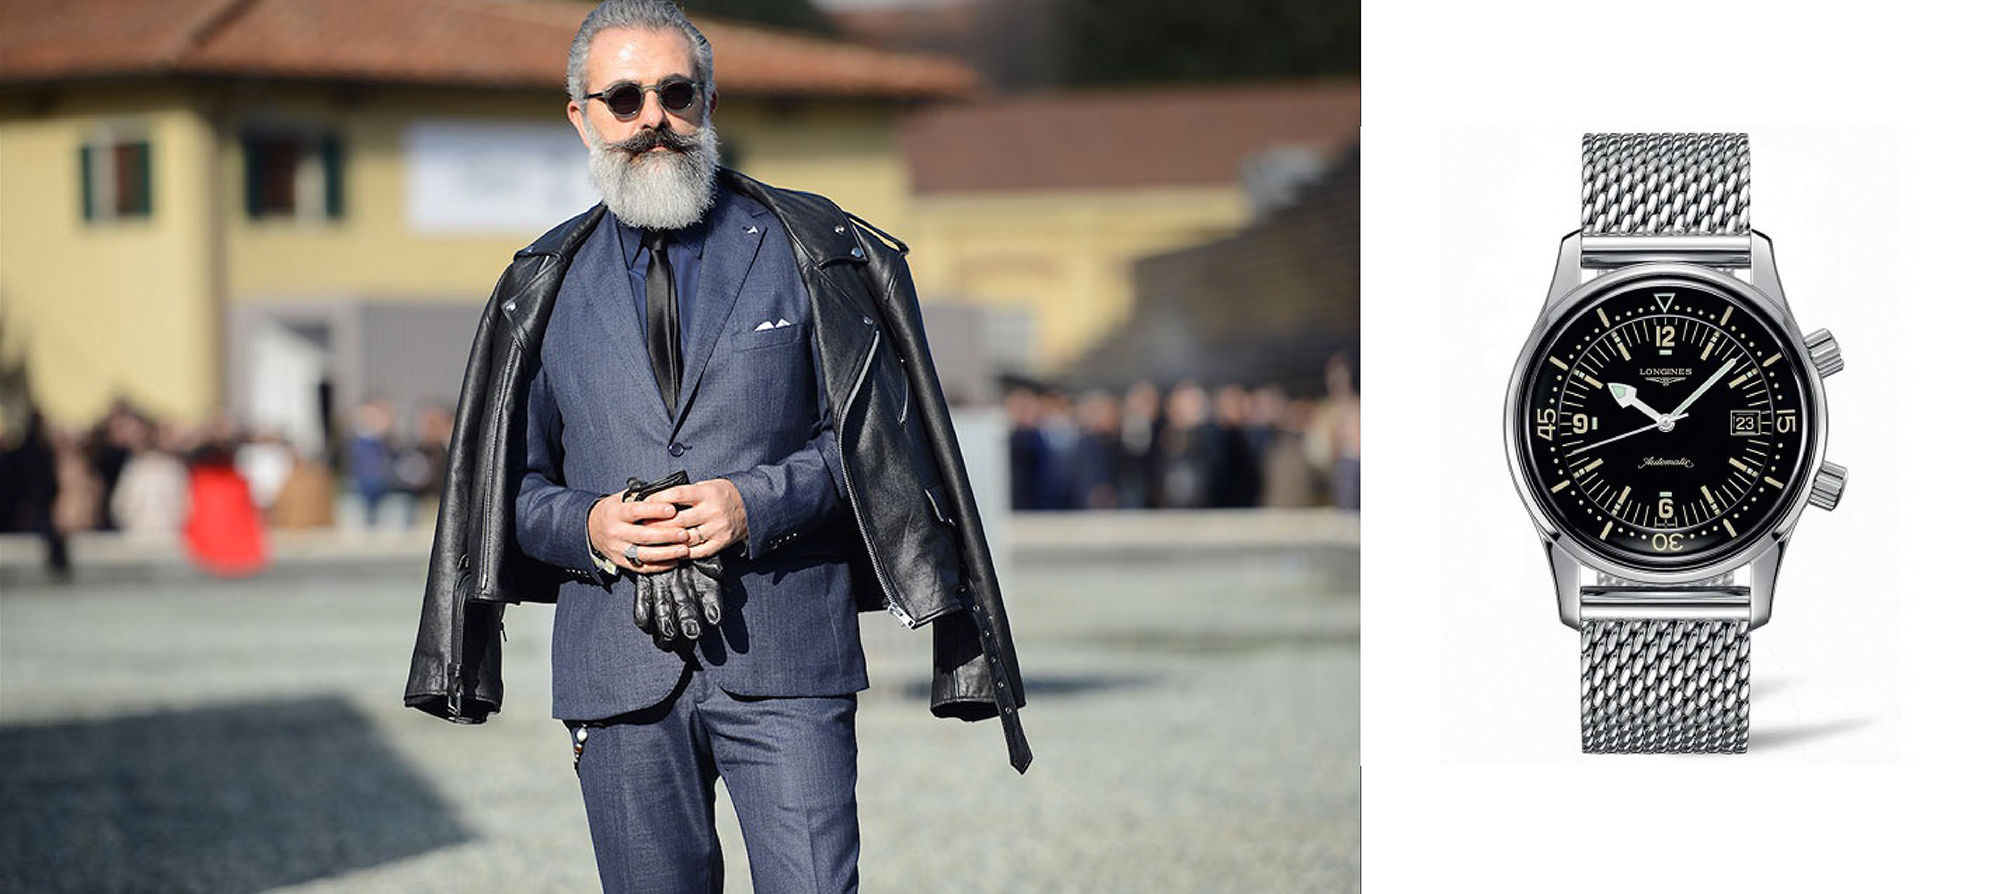 Pitti Immagine Uomo 2018 The Ace List TAL